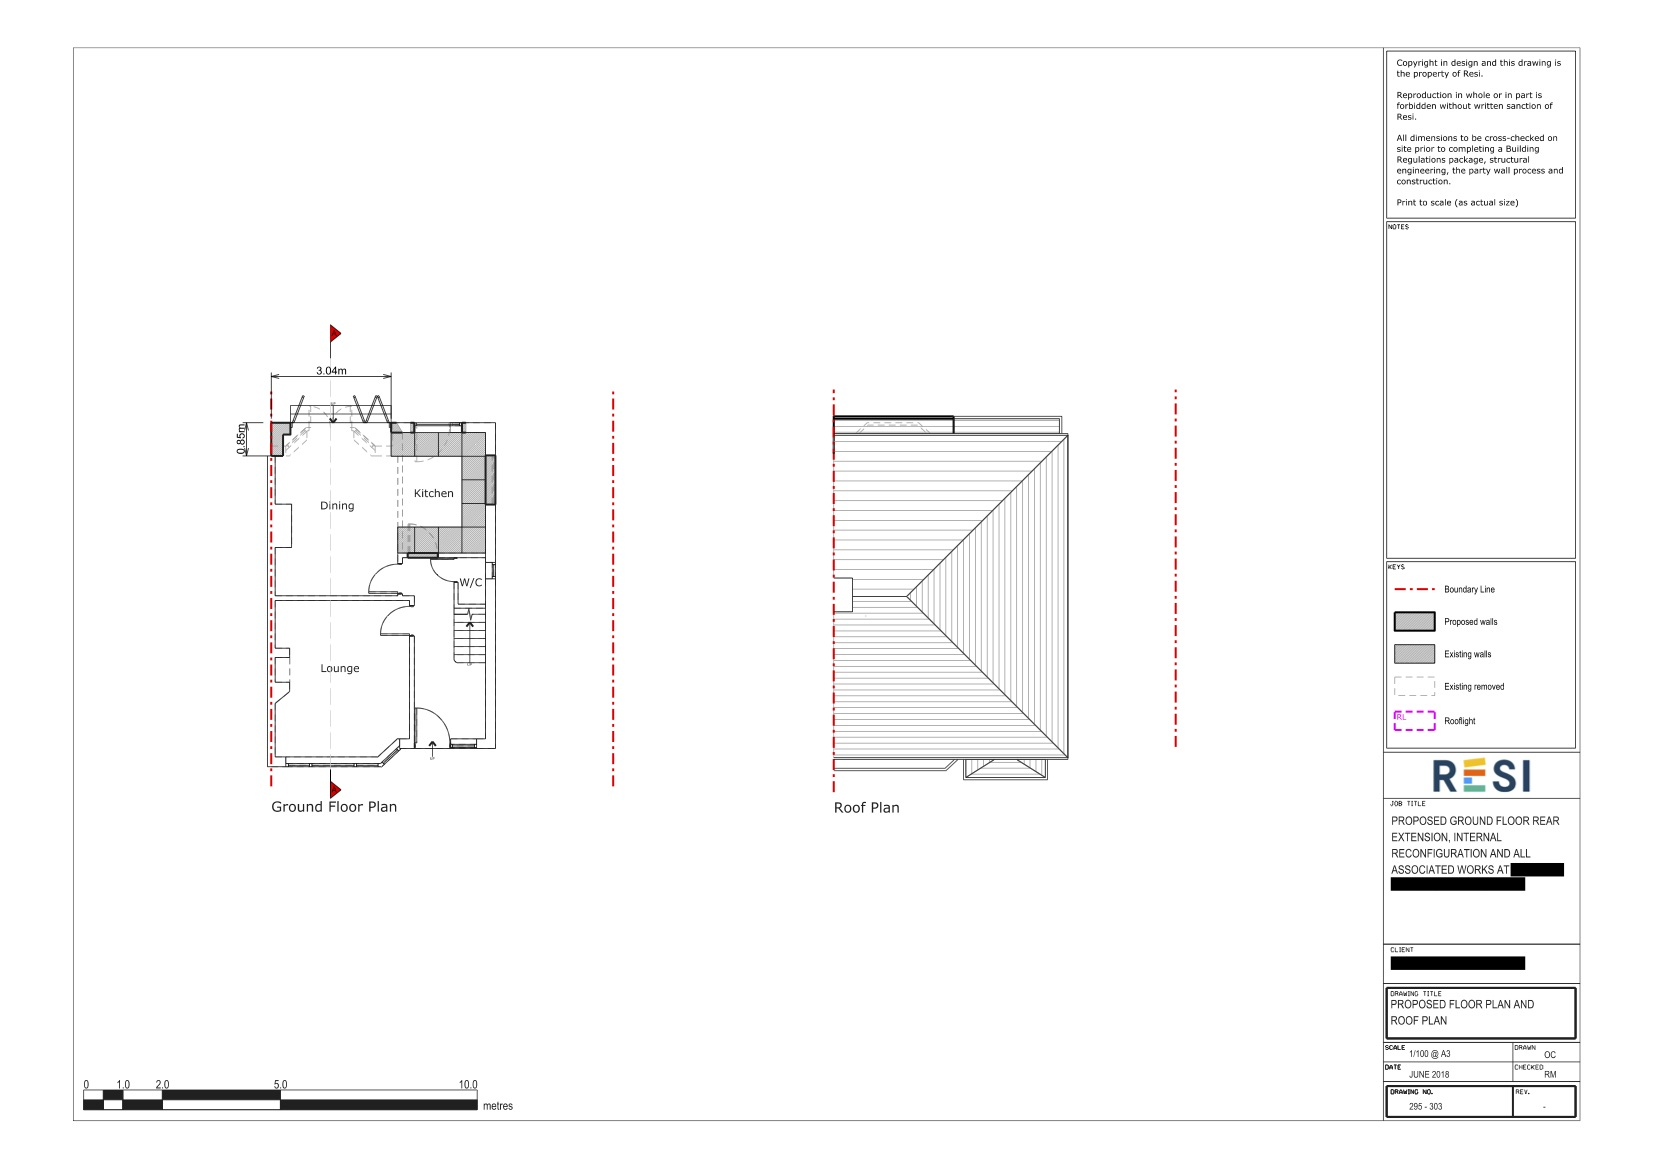 Gf architectural drawings 2   ground floor plans